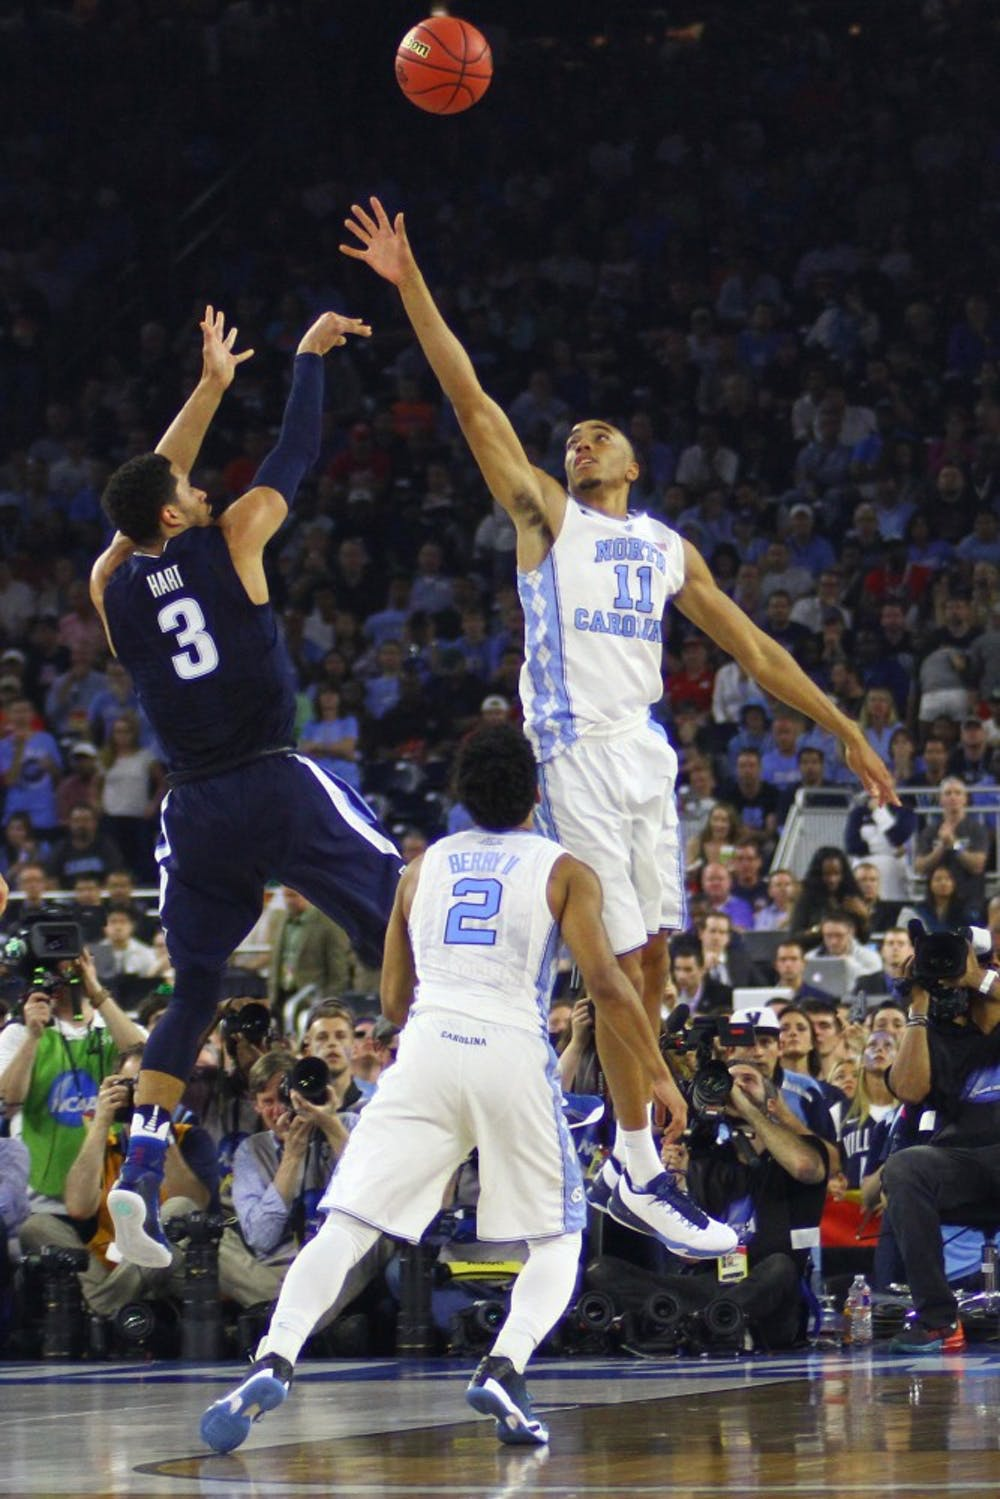 We sat down with Brice Johnson to talk about his new career overseas